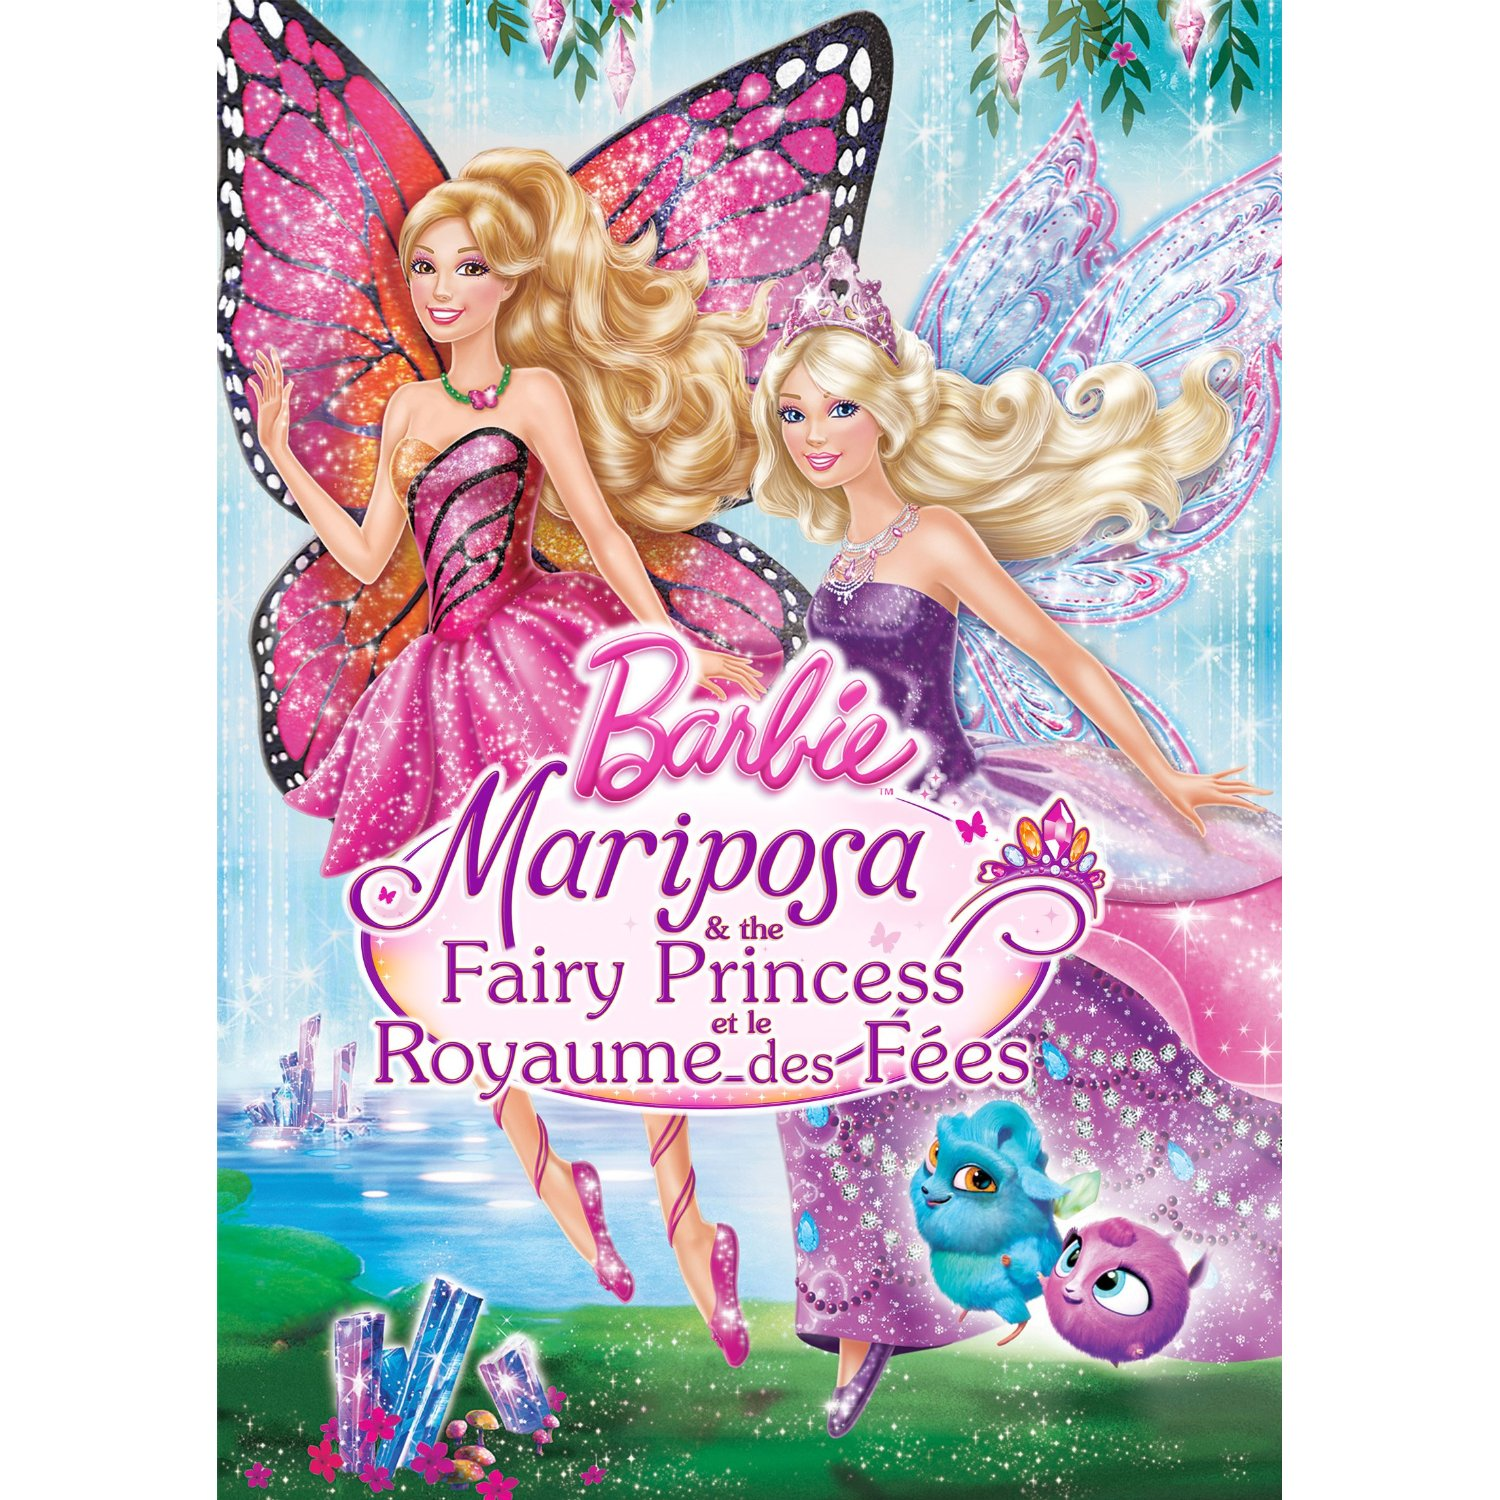 Barbie Movies Images Mariposa The Fairy Princess Dvd And Blu Ray HD Wallpaper Background Photos